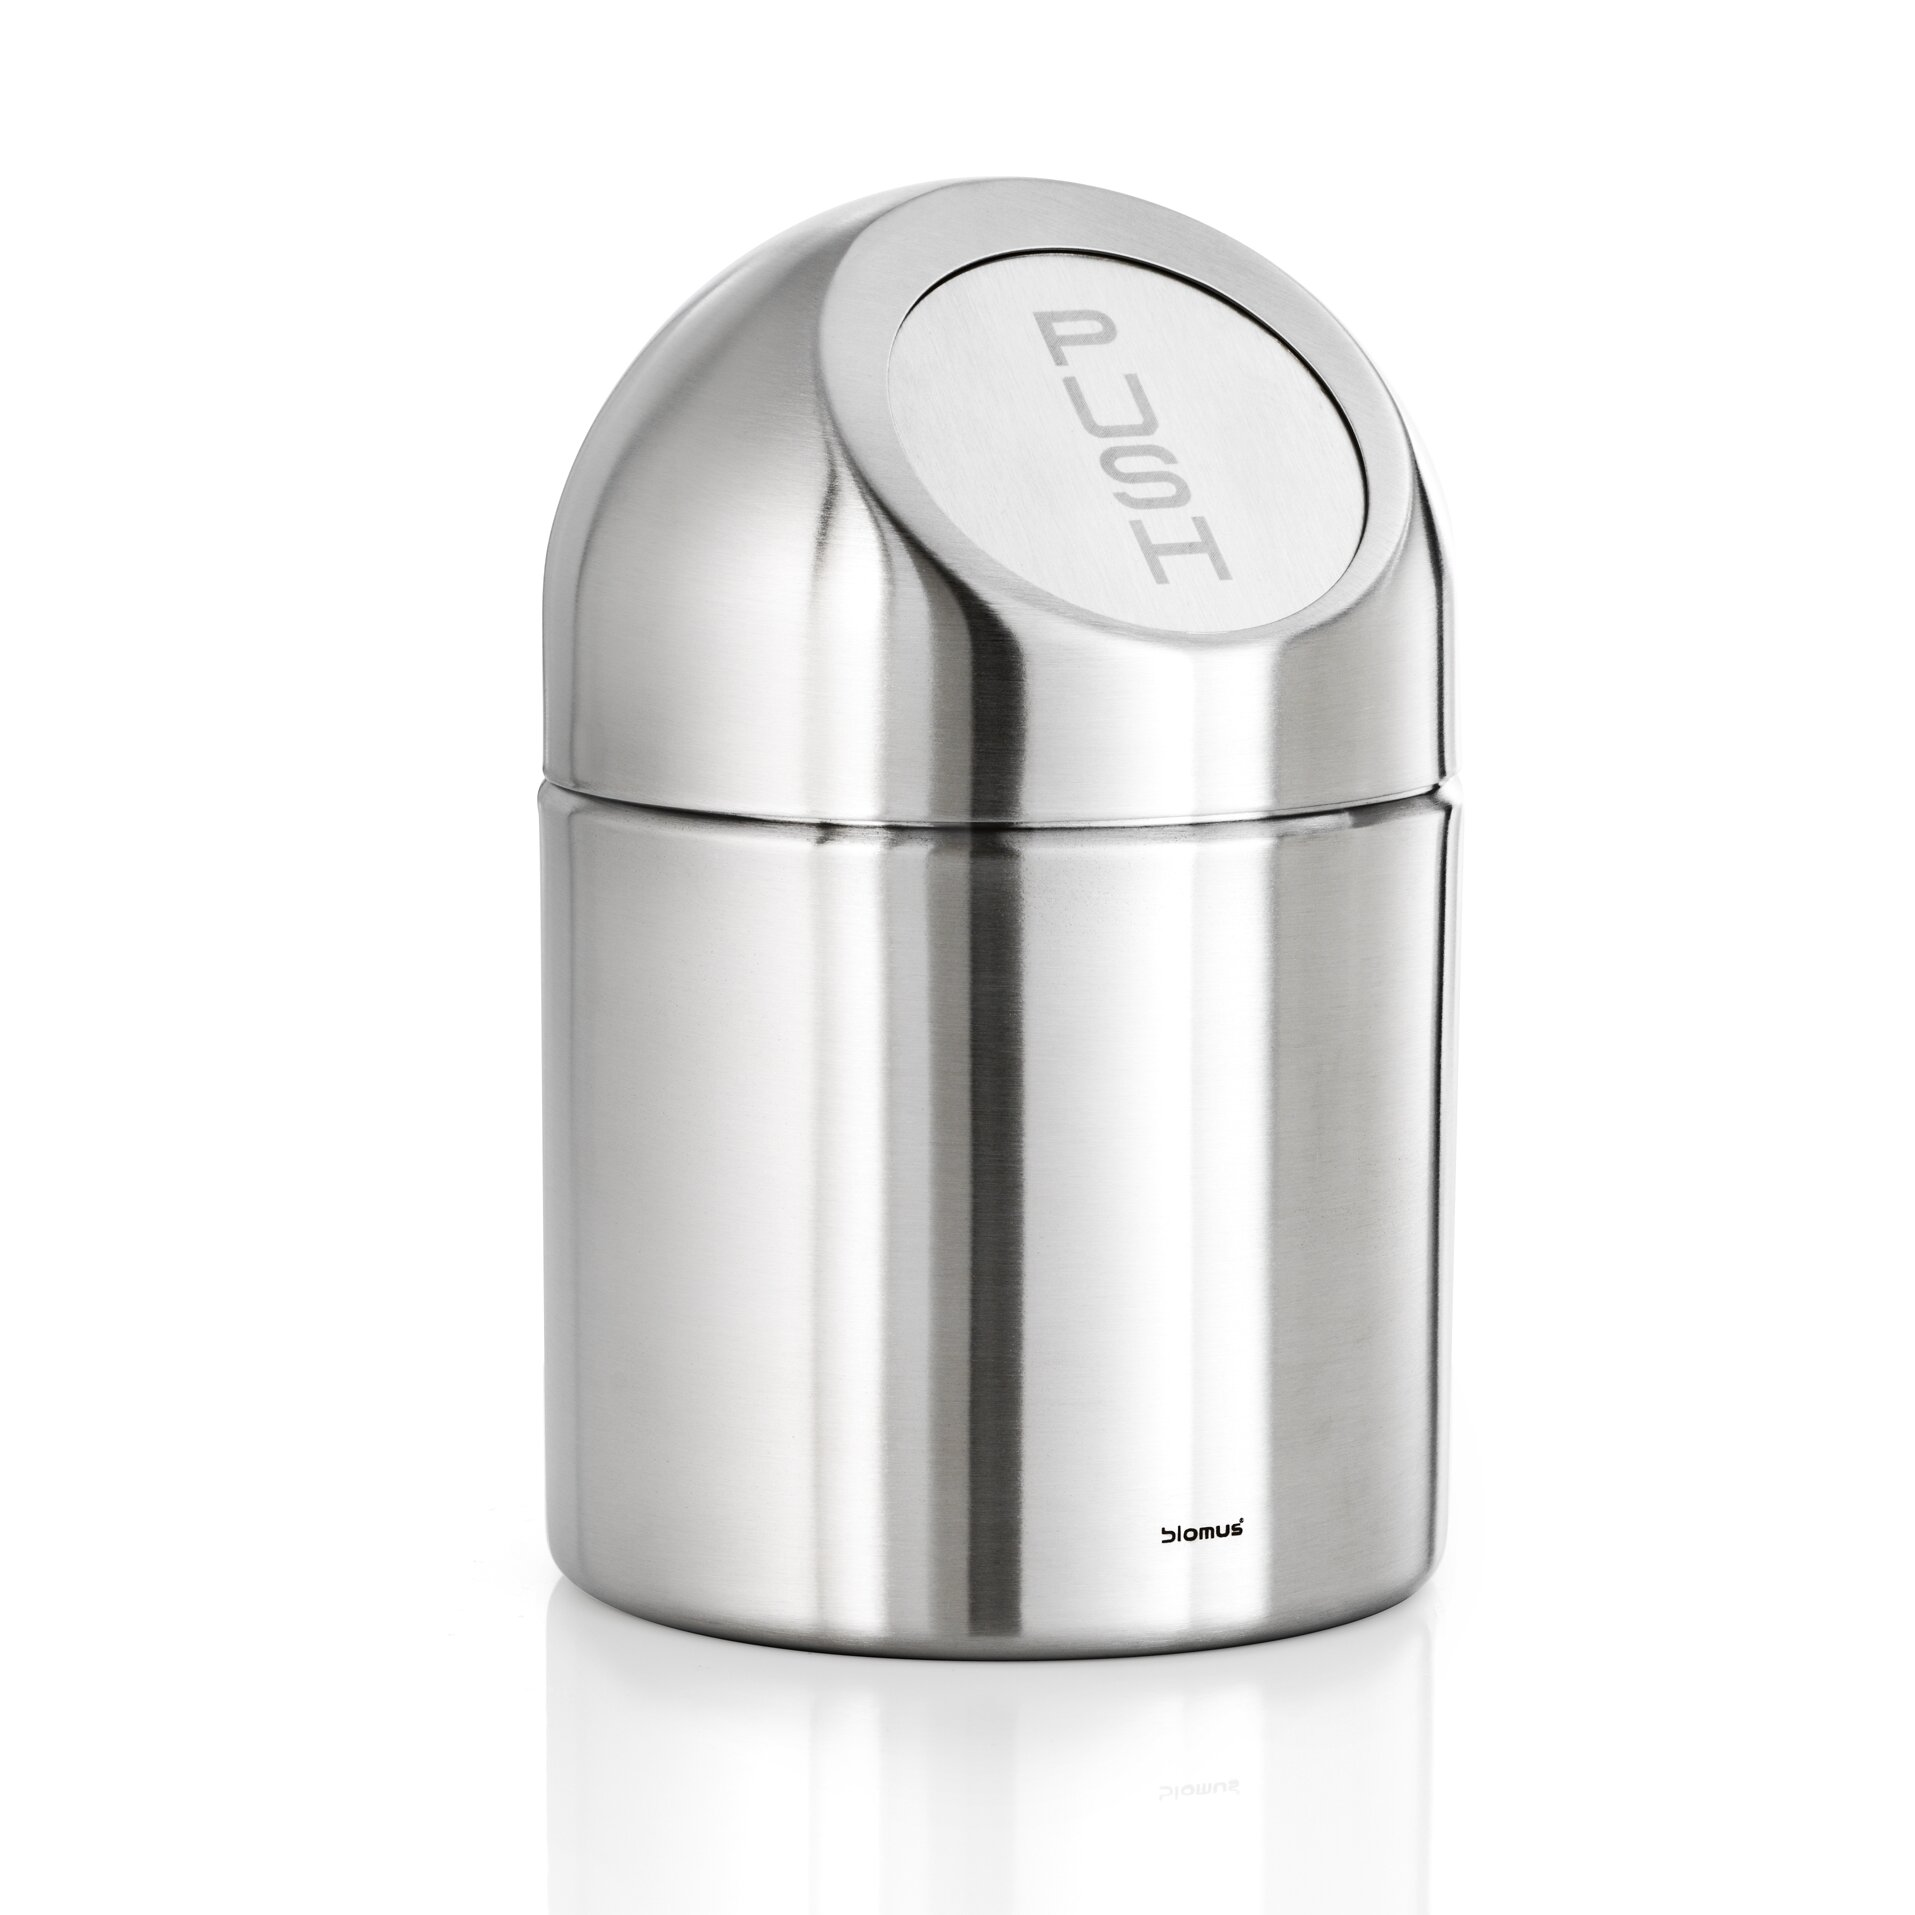 Blomus intro pushboy 5 gallon swing top stainless steel - Poubelle salle de bain ...